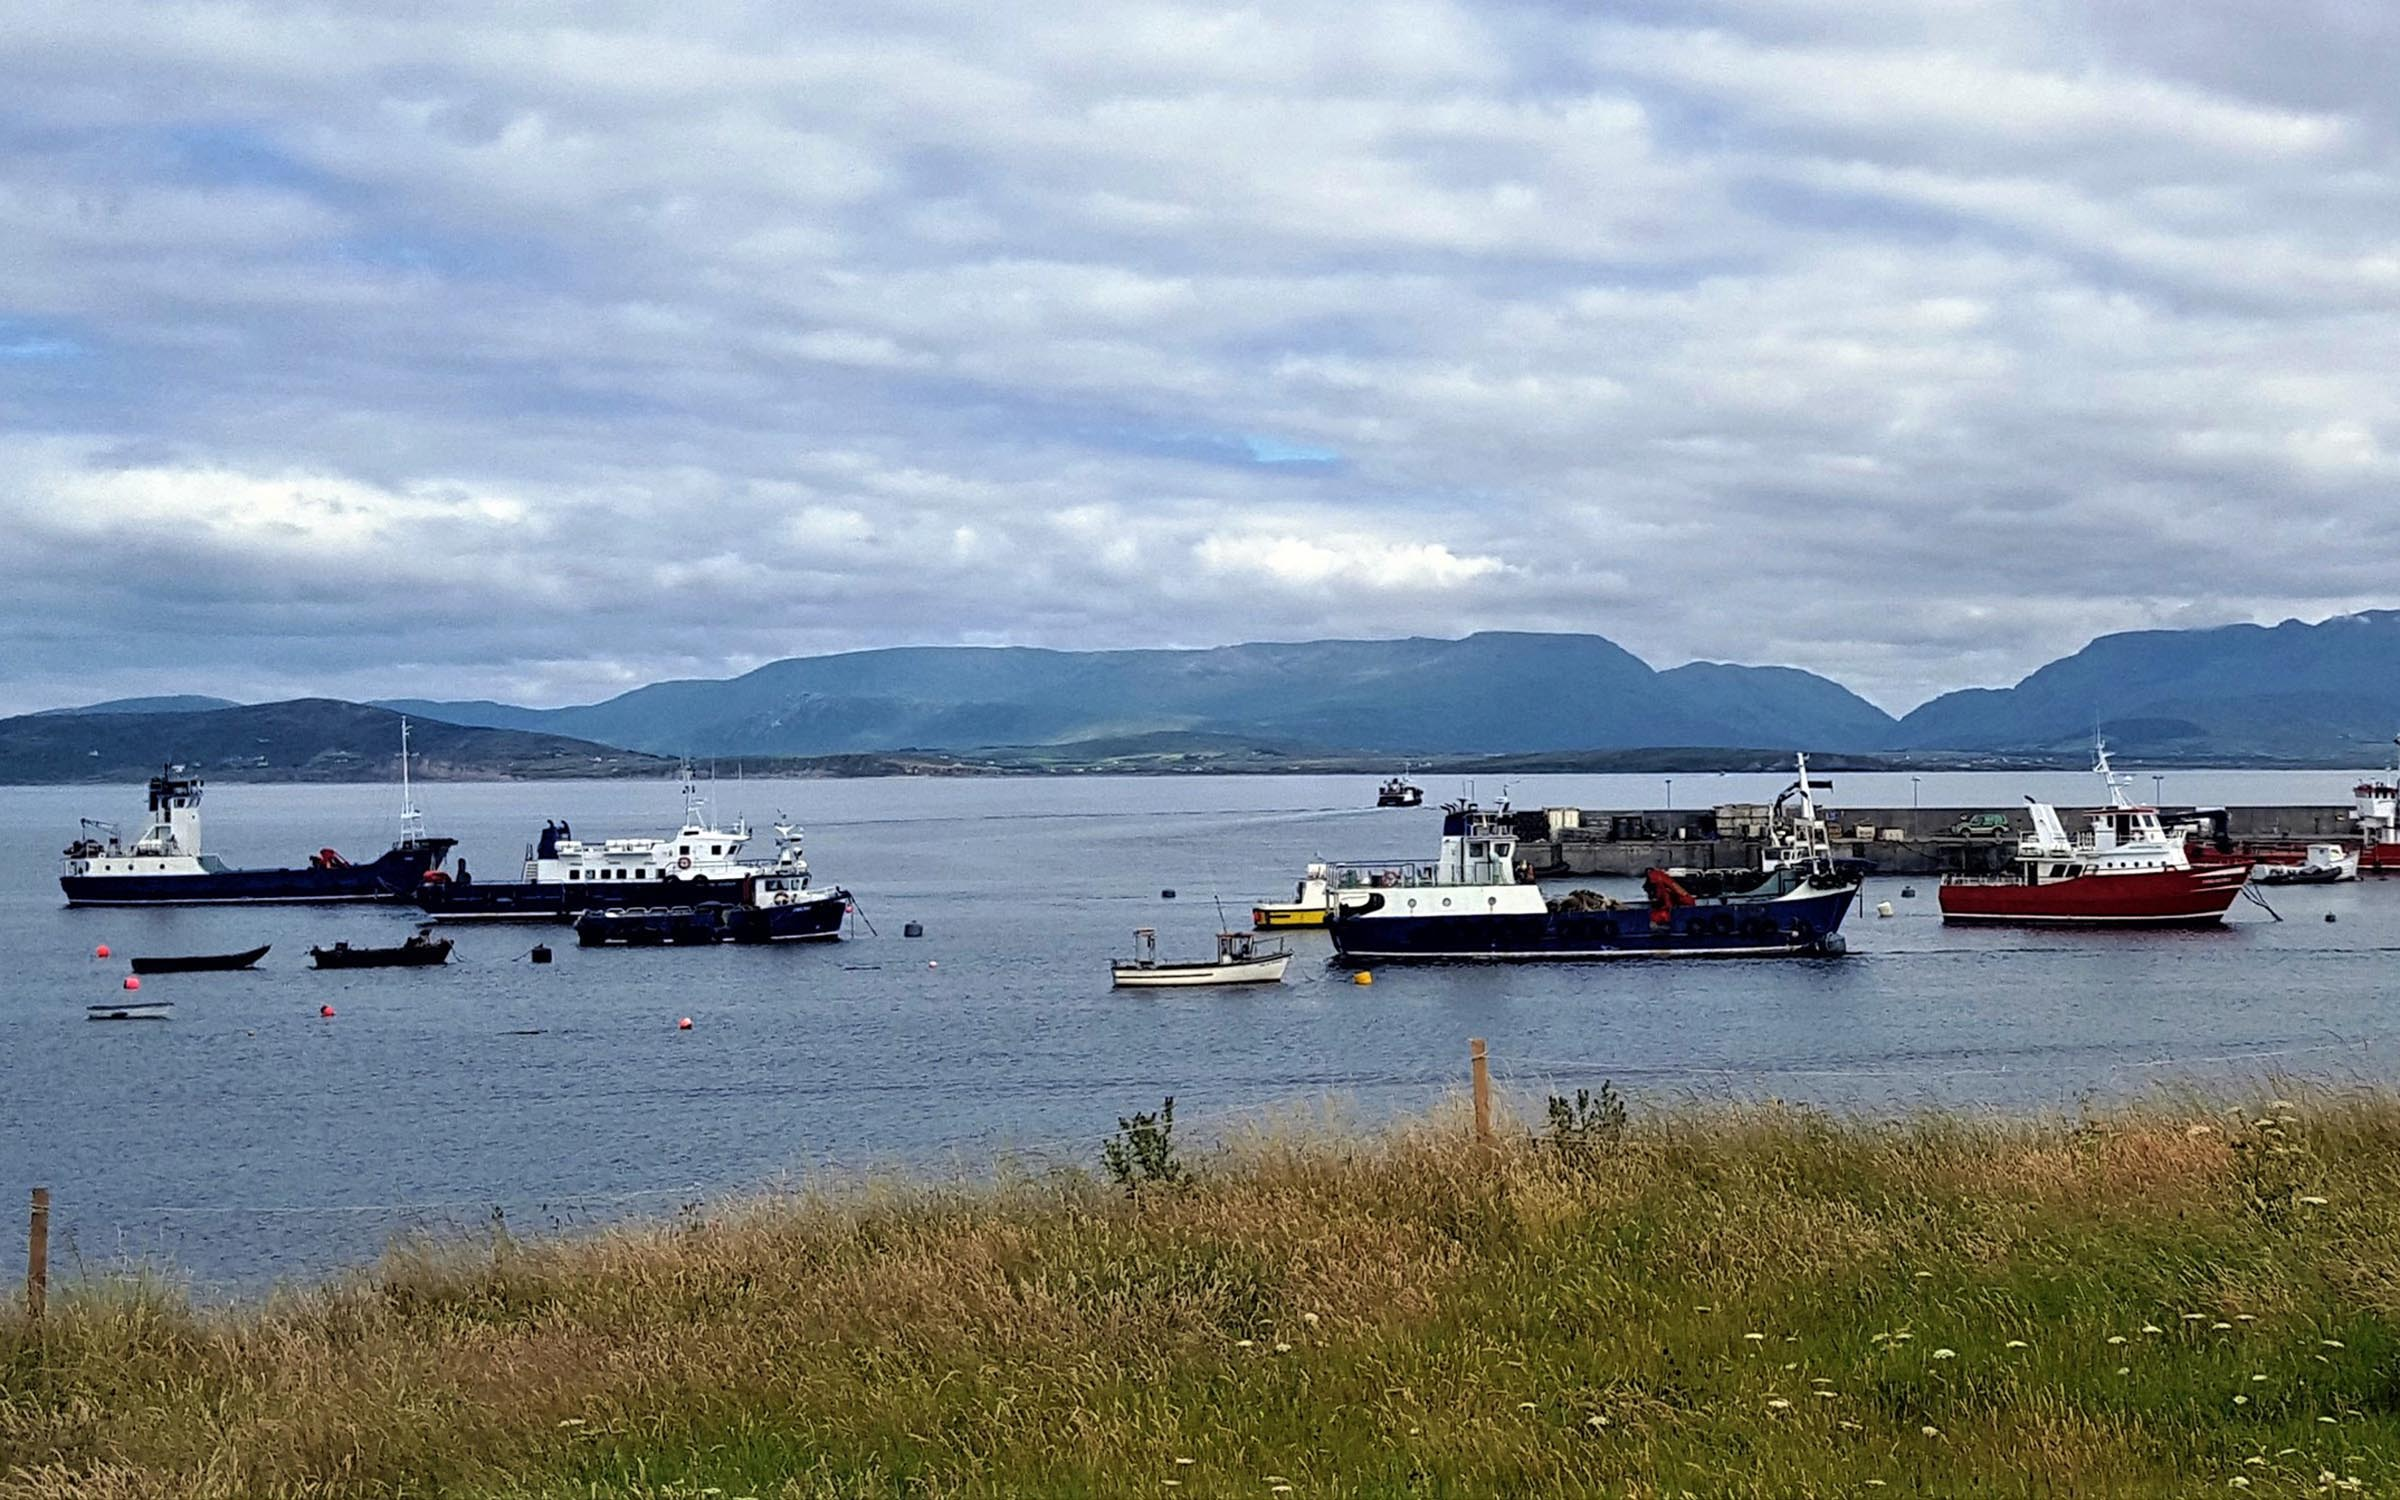 Bruernish (right) with Eigg and Clew Bay Queen (ex Kilbrannan) at Clare Island (Mark Wemyss)